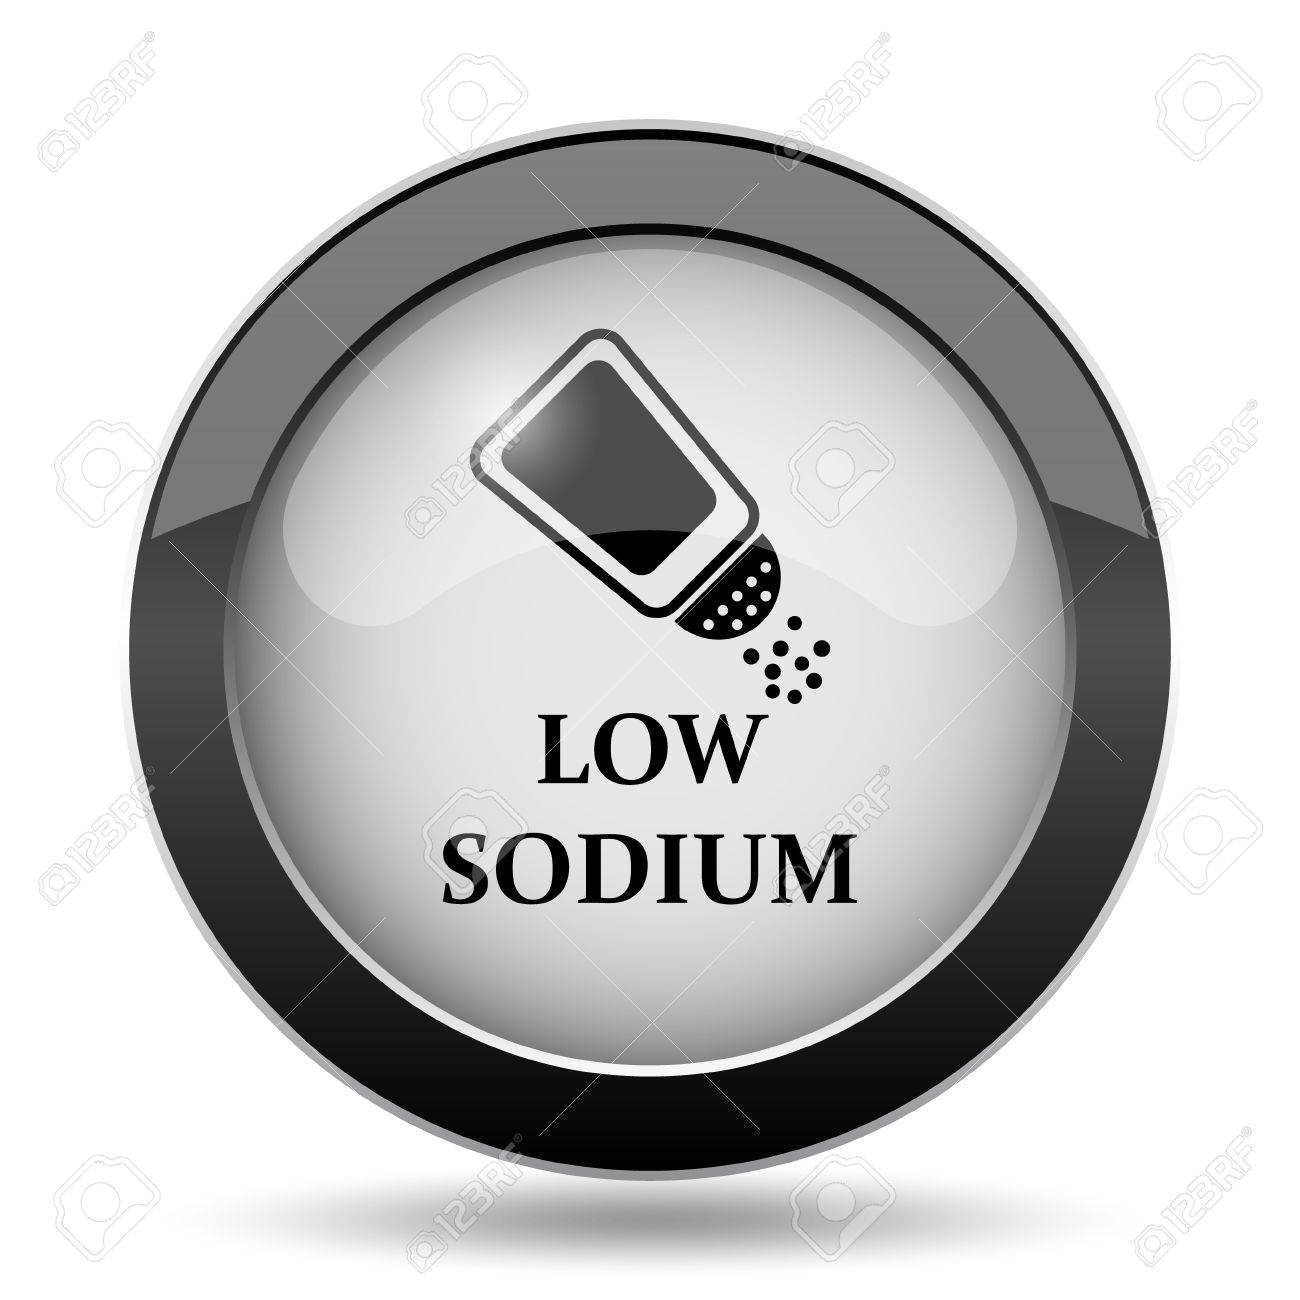 Image result for sodium icon